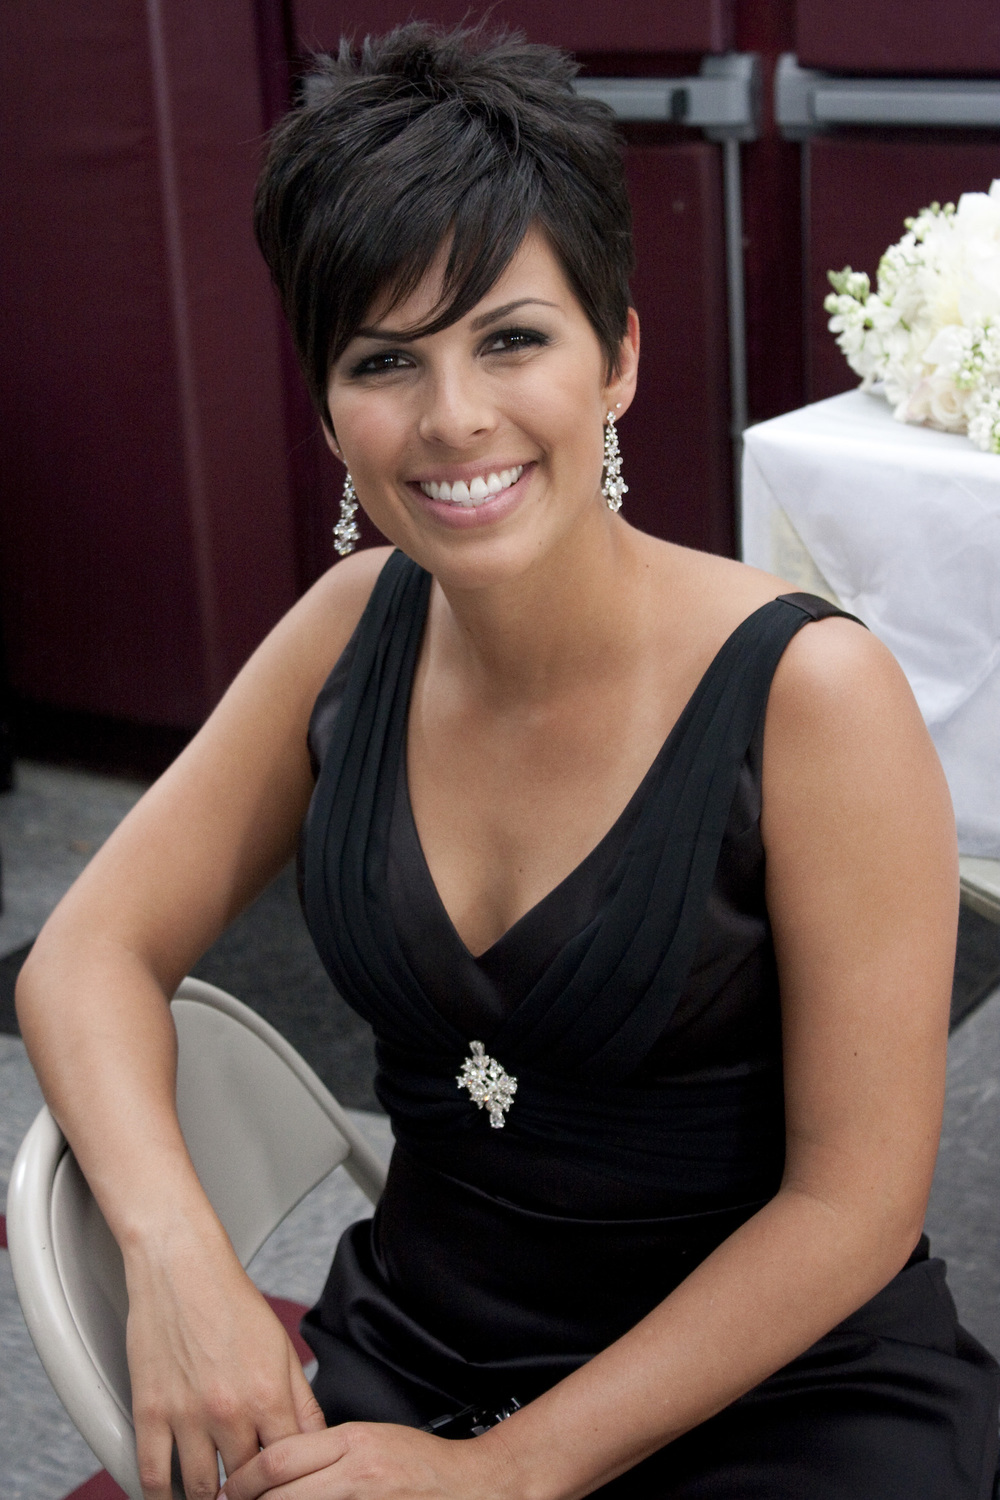 event-short-hair-pixie-cut-smoky-eye-event-makeup.jpg